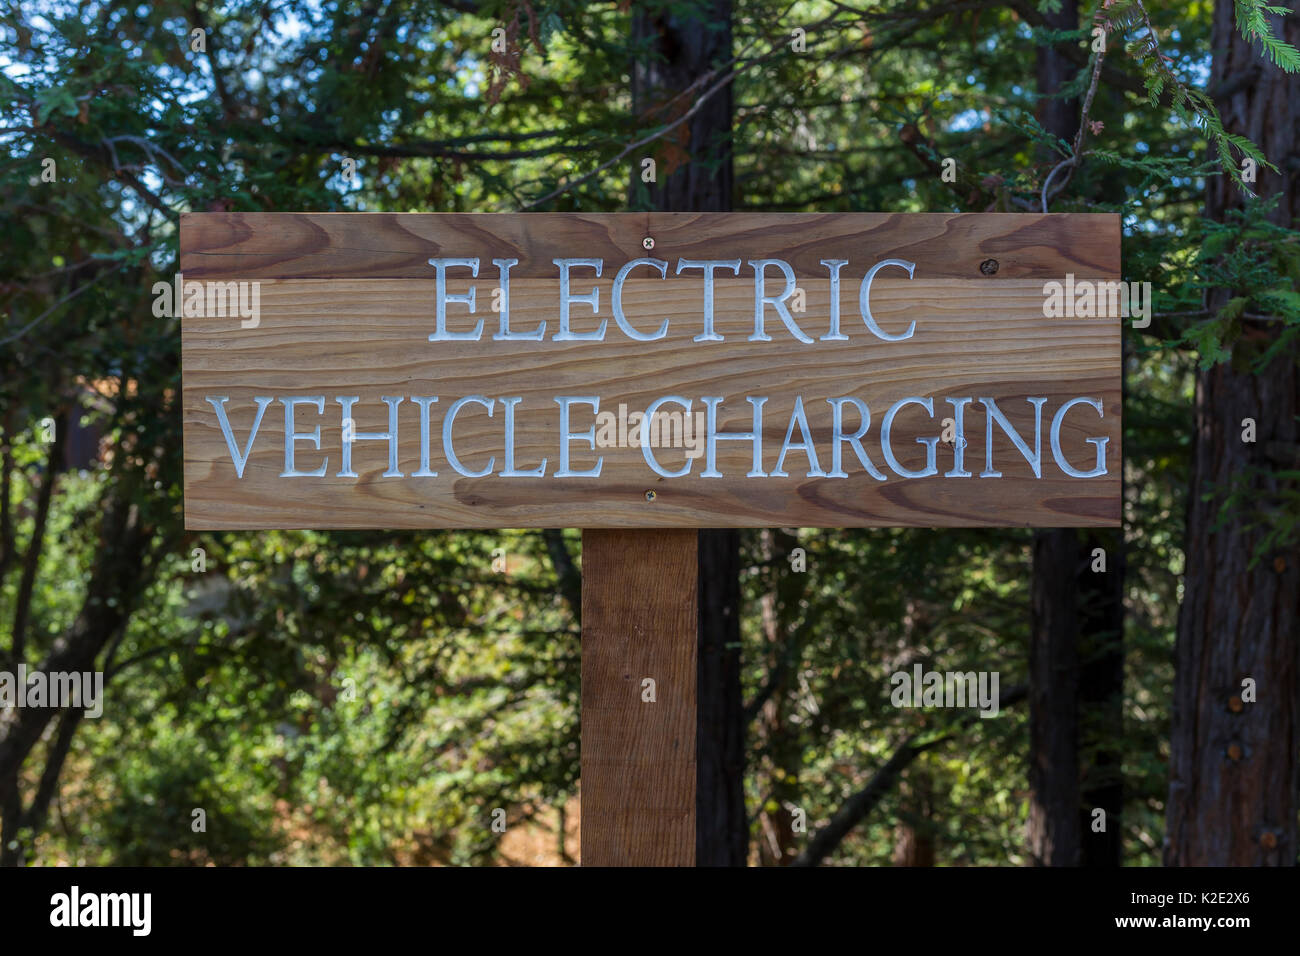 electric vehicle charging station, clean energy, Joseph Phelps Vineyards, Napa Valley, Napa County, California, Stock Photo